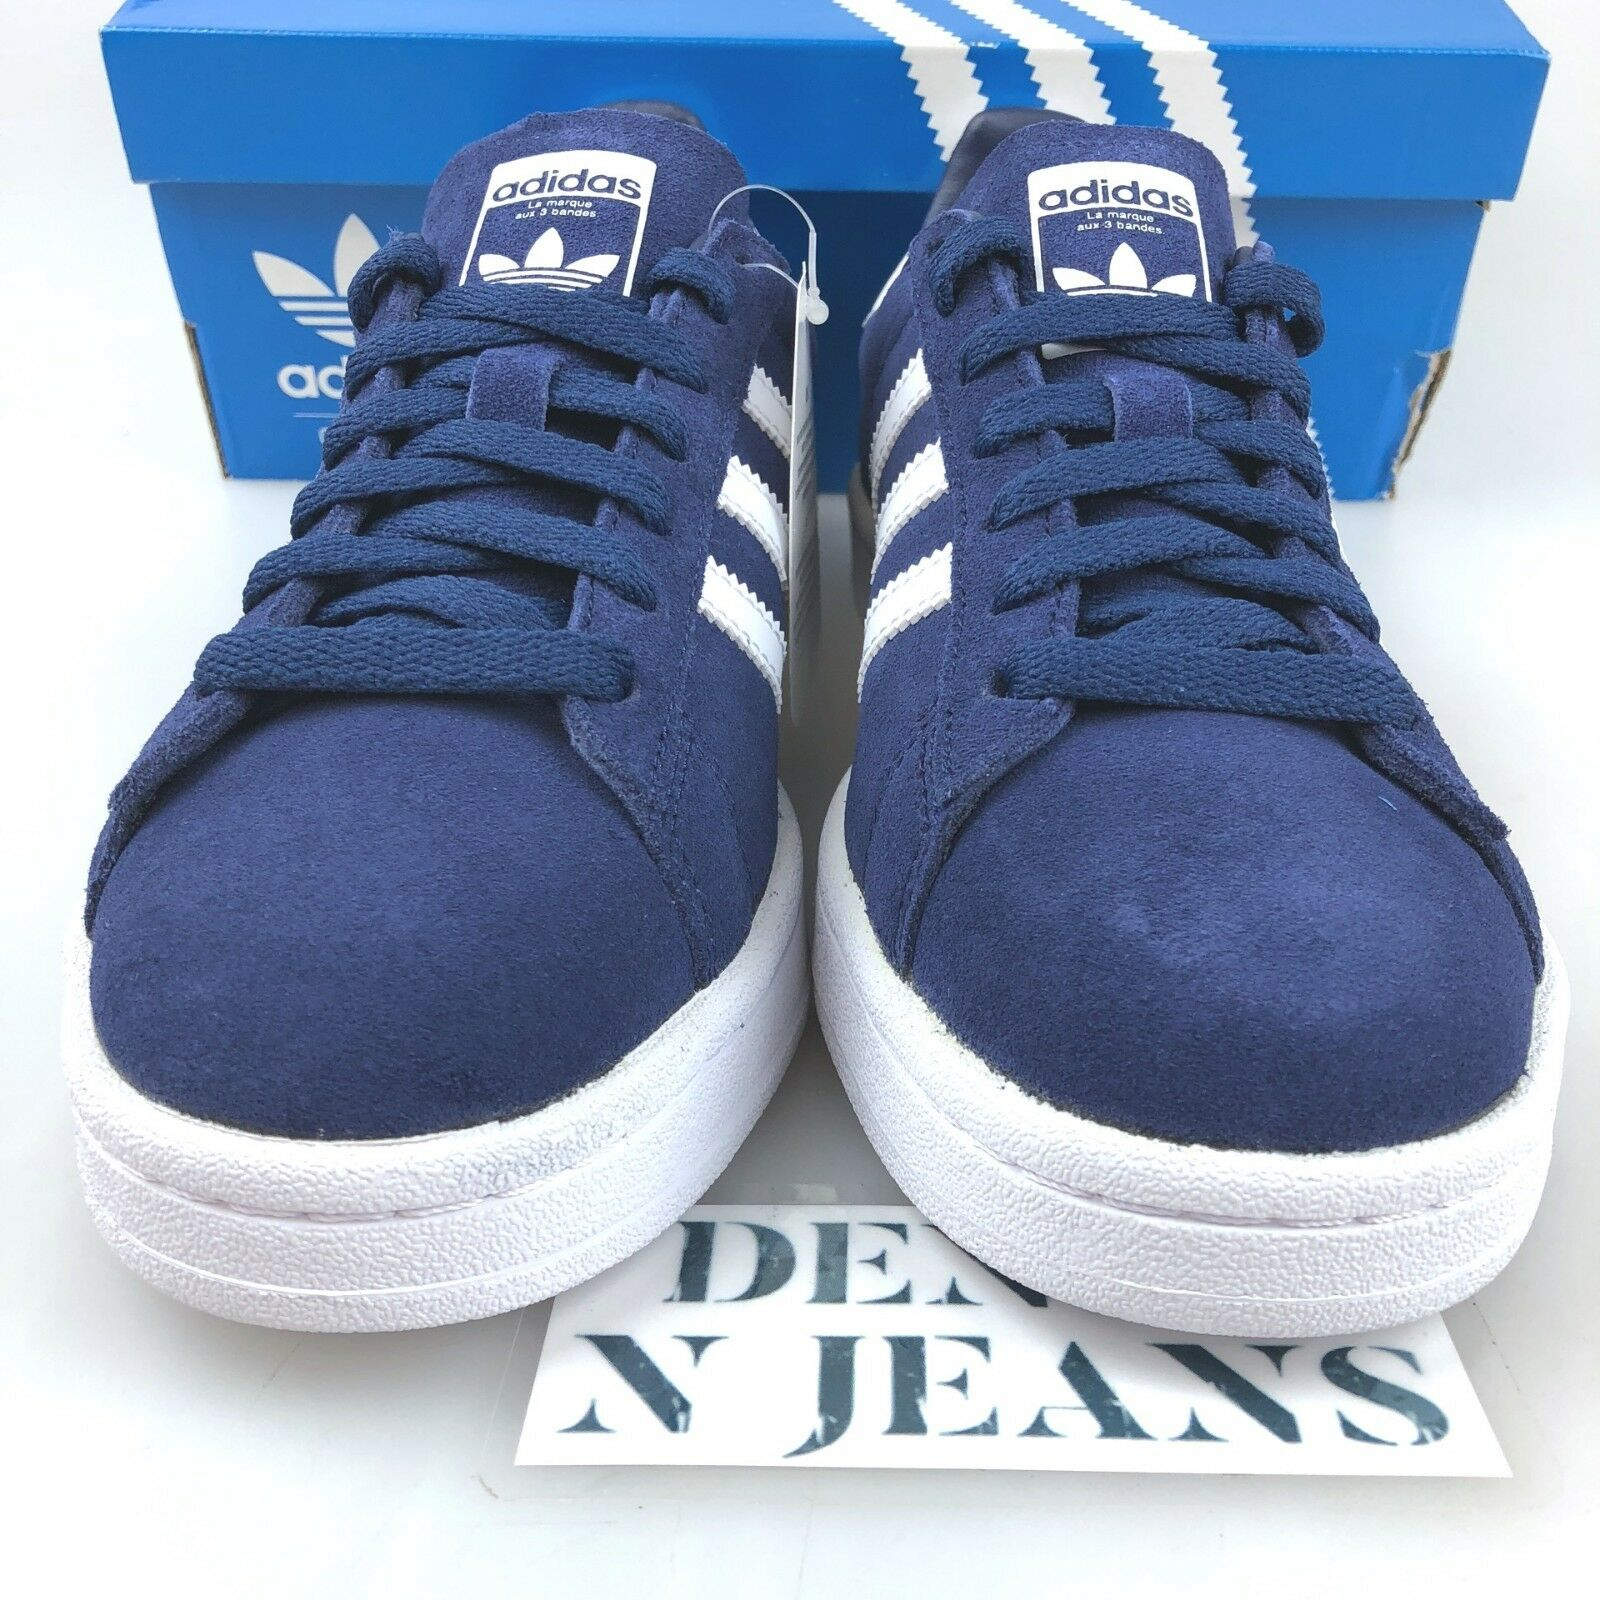 ADIDAS CAMPUS J SNEAKERS BLUE WHITE